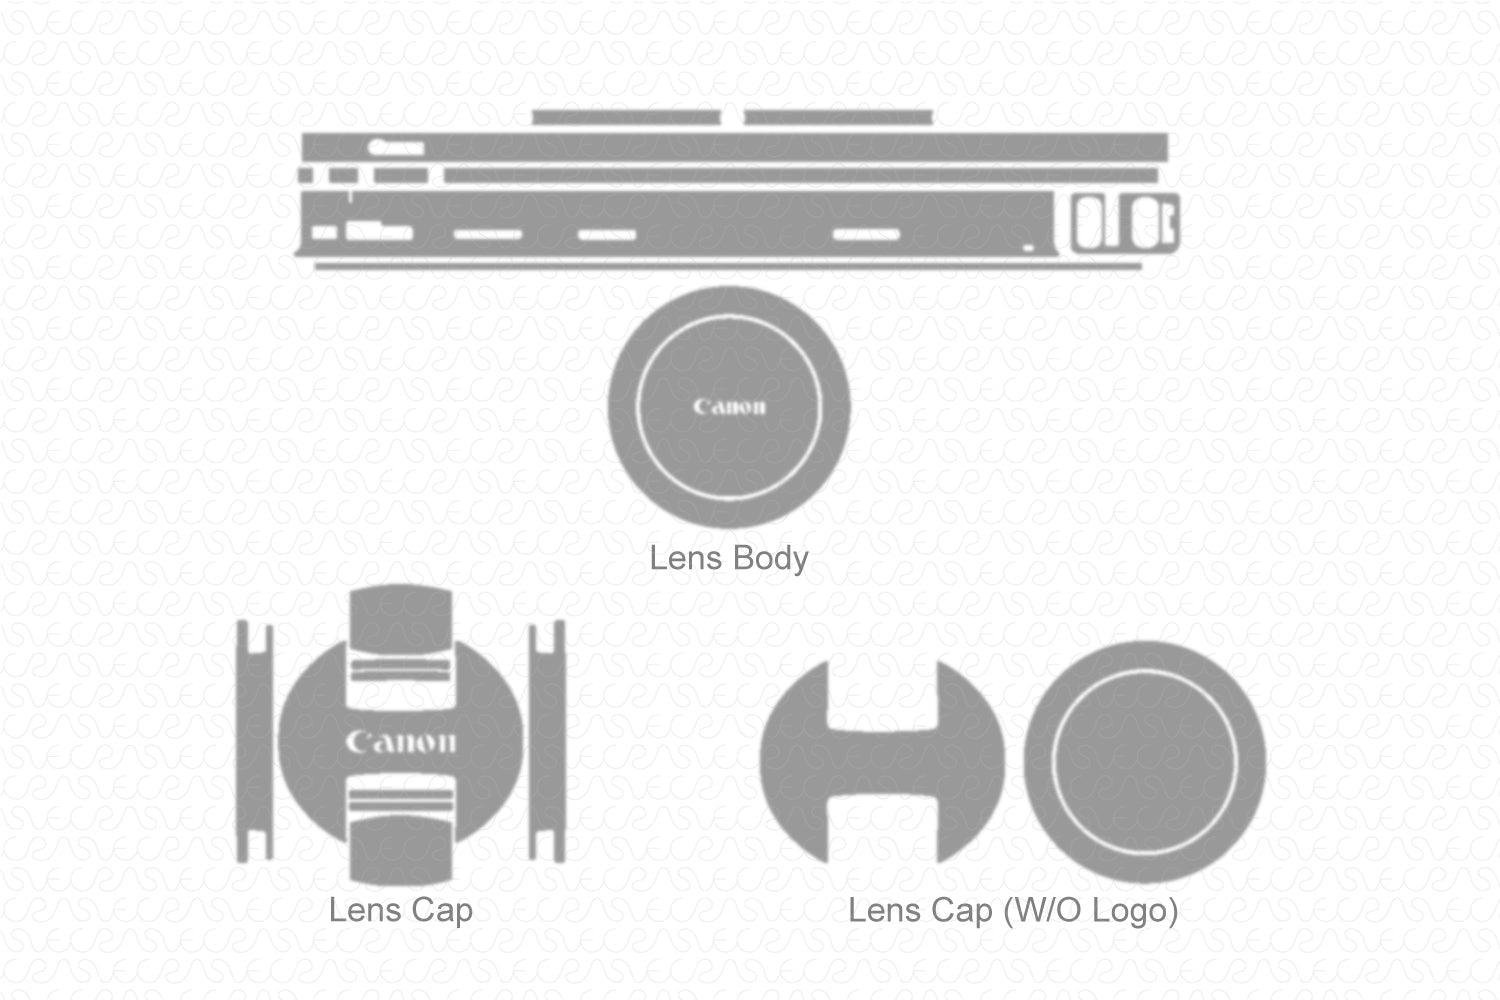 Canon EF-S 18-55mm f/4-5.6 IS STM Lens 2017 Skin Vector Template